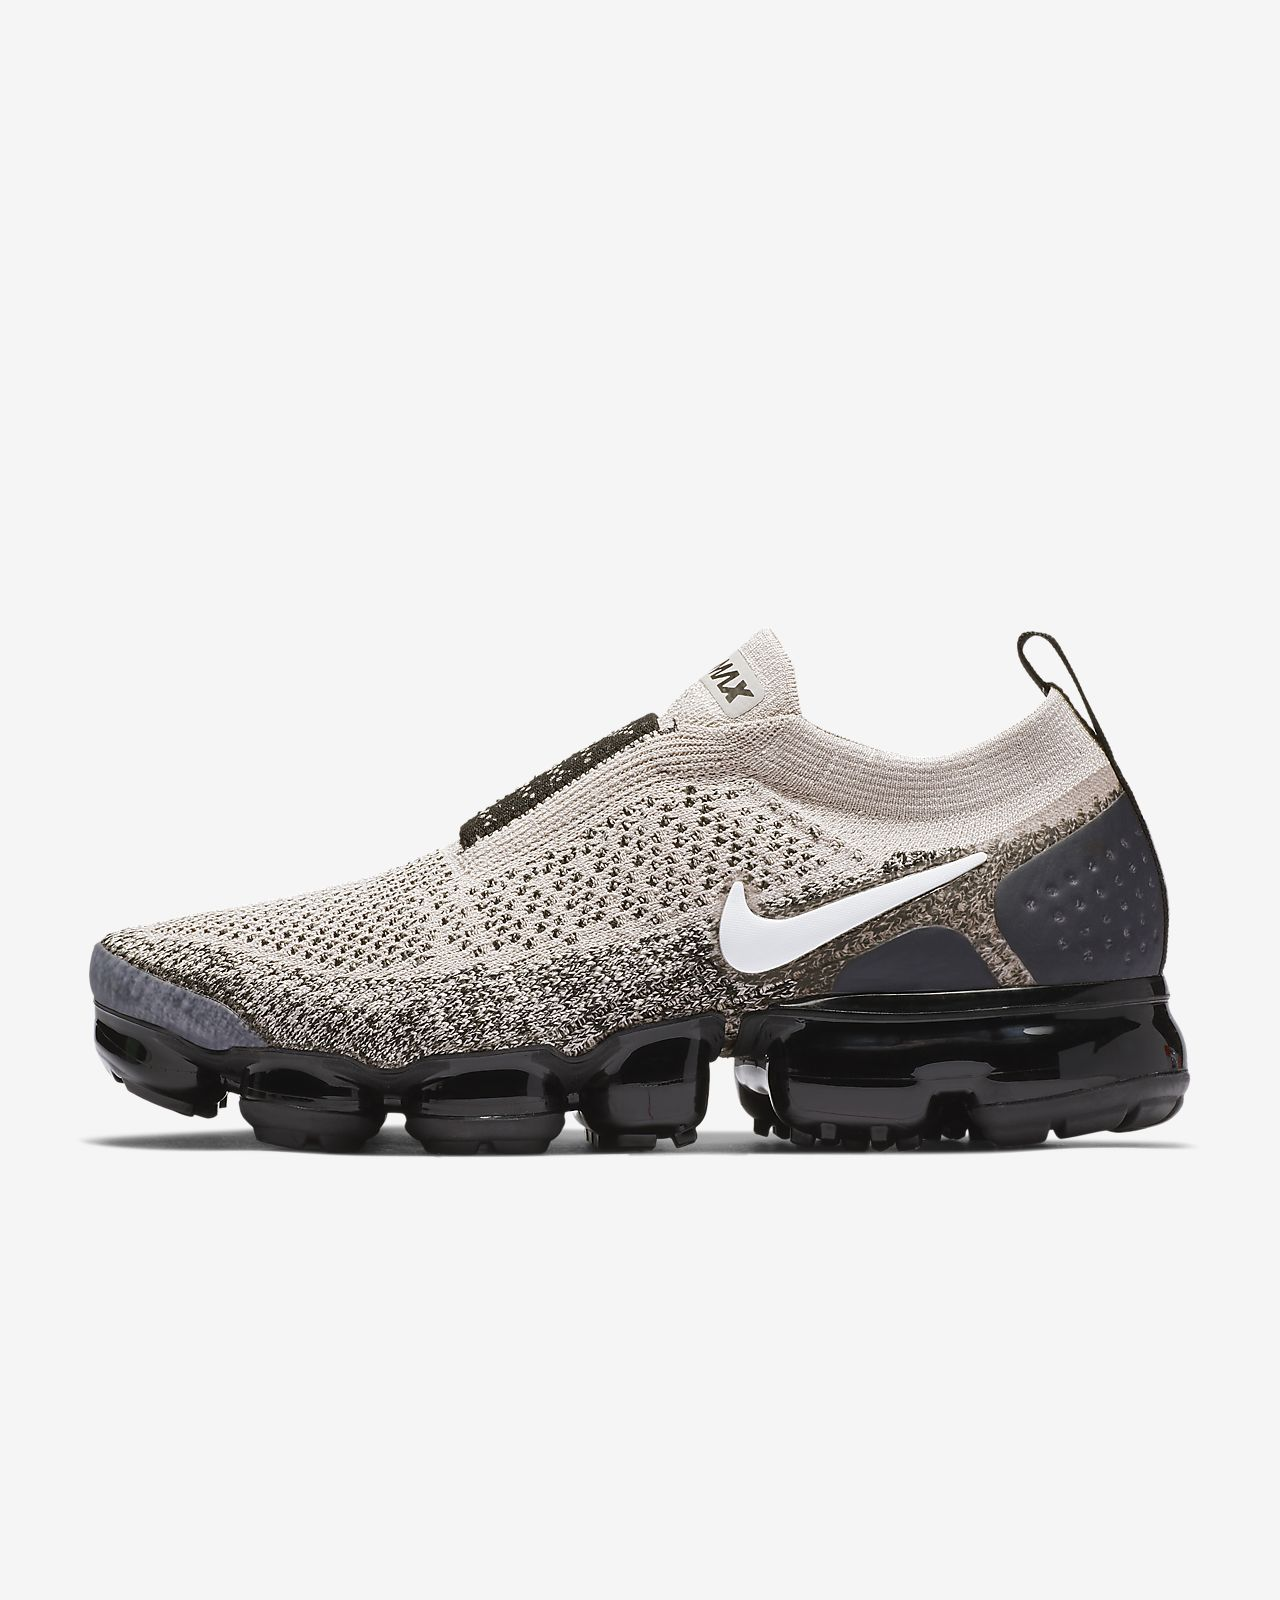 brand new b180a 70ddc ... Chaussure Nike Air VaporMax Flyknit Moc 2 pour Femme